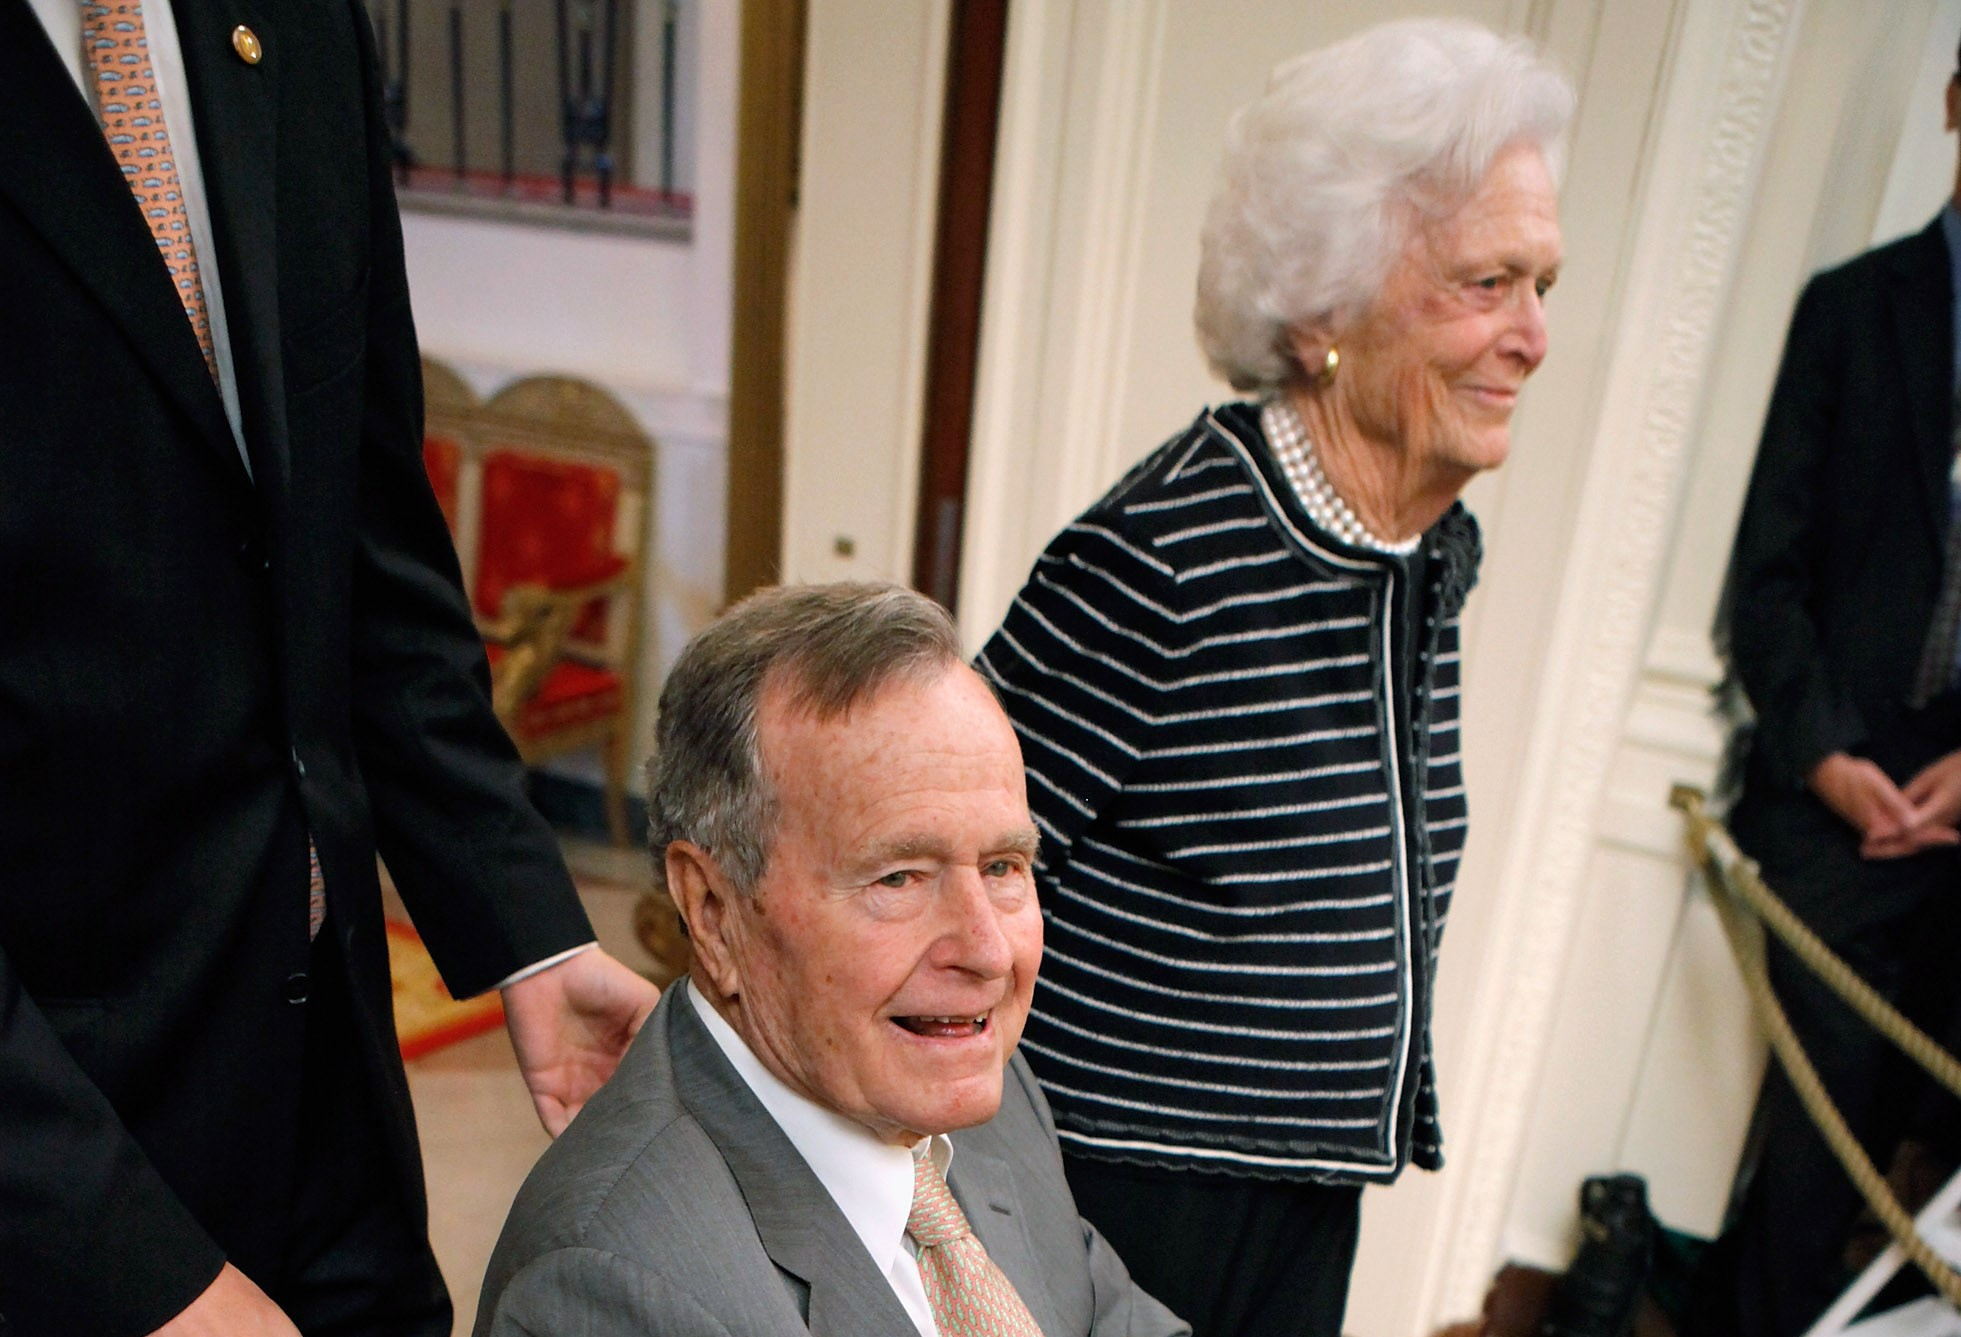 Former President George H.W. Bush and former First Lady Barbara Bush were both hospitalized recently. (Getty Images)